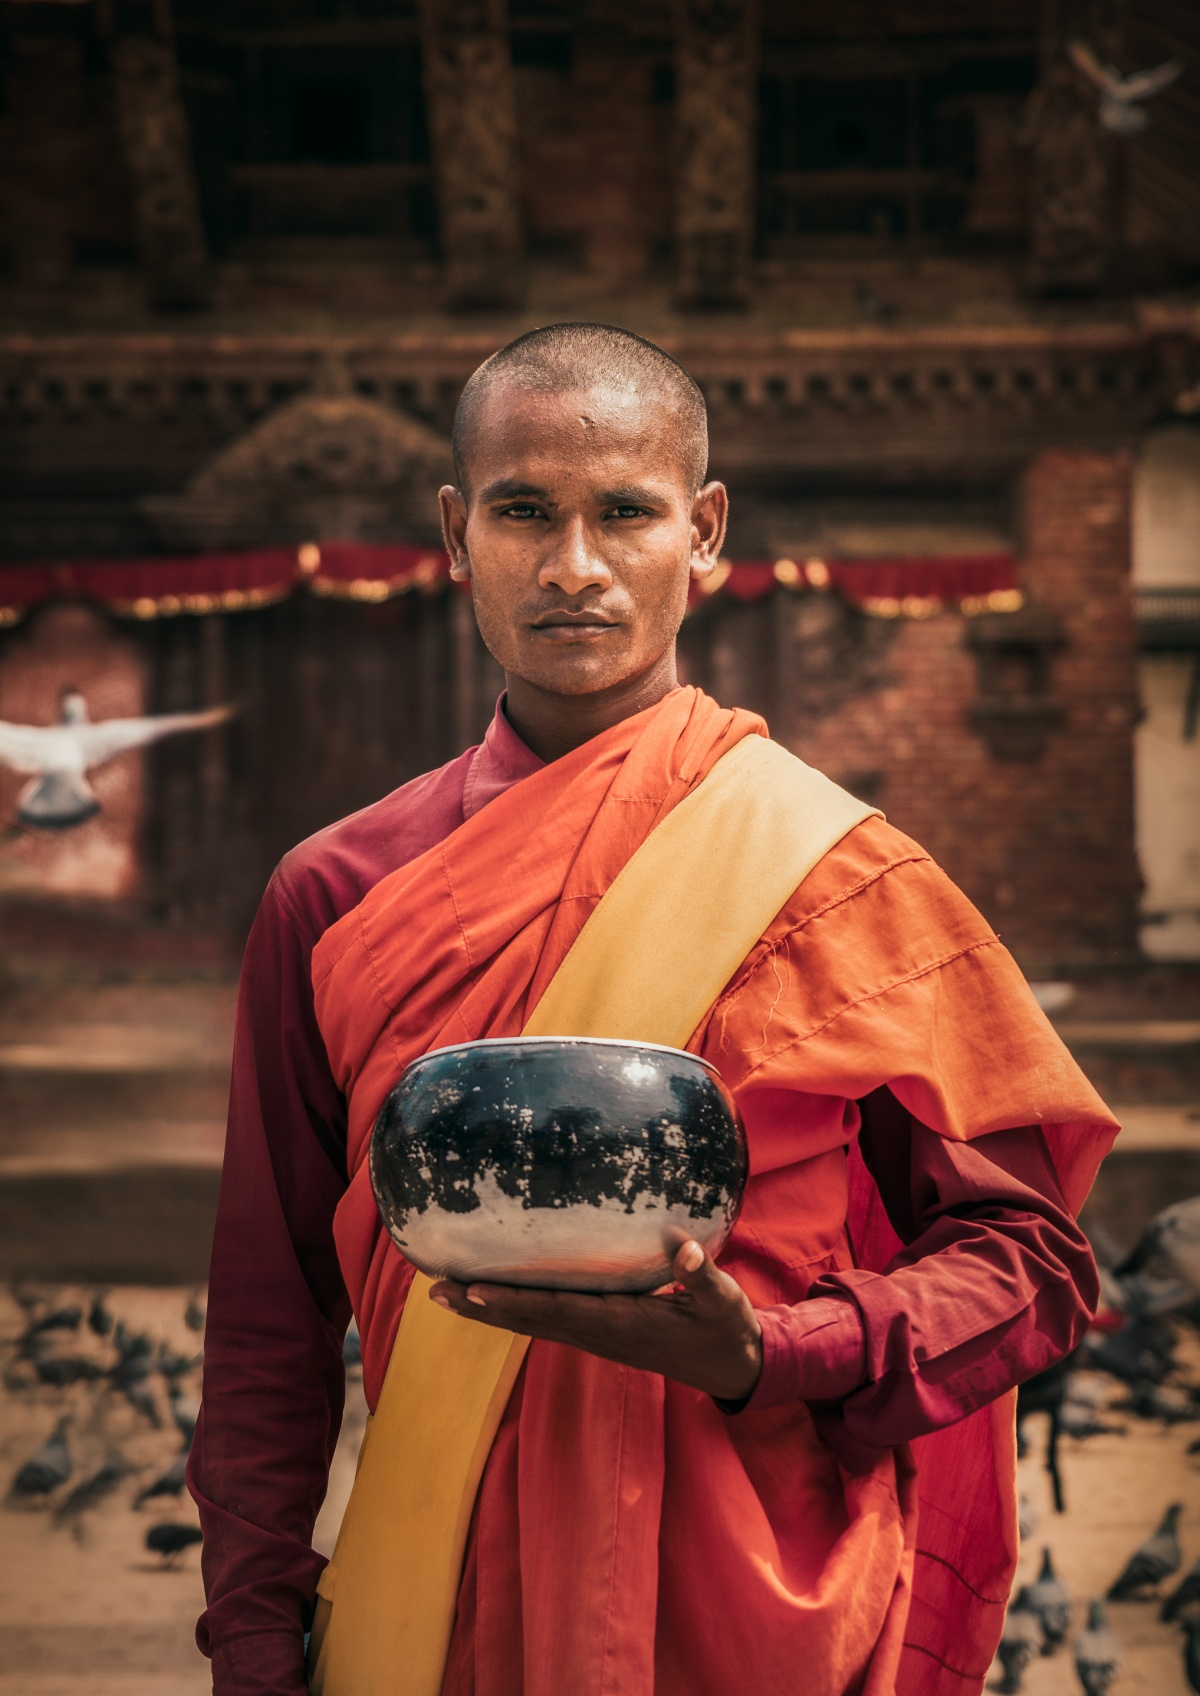 Photo of Nepalese monk in Durbar square, Kathmandu